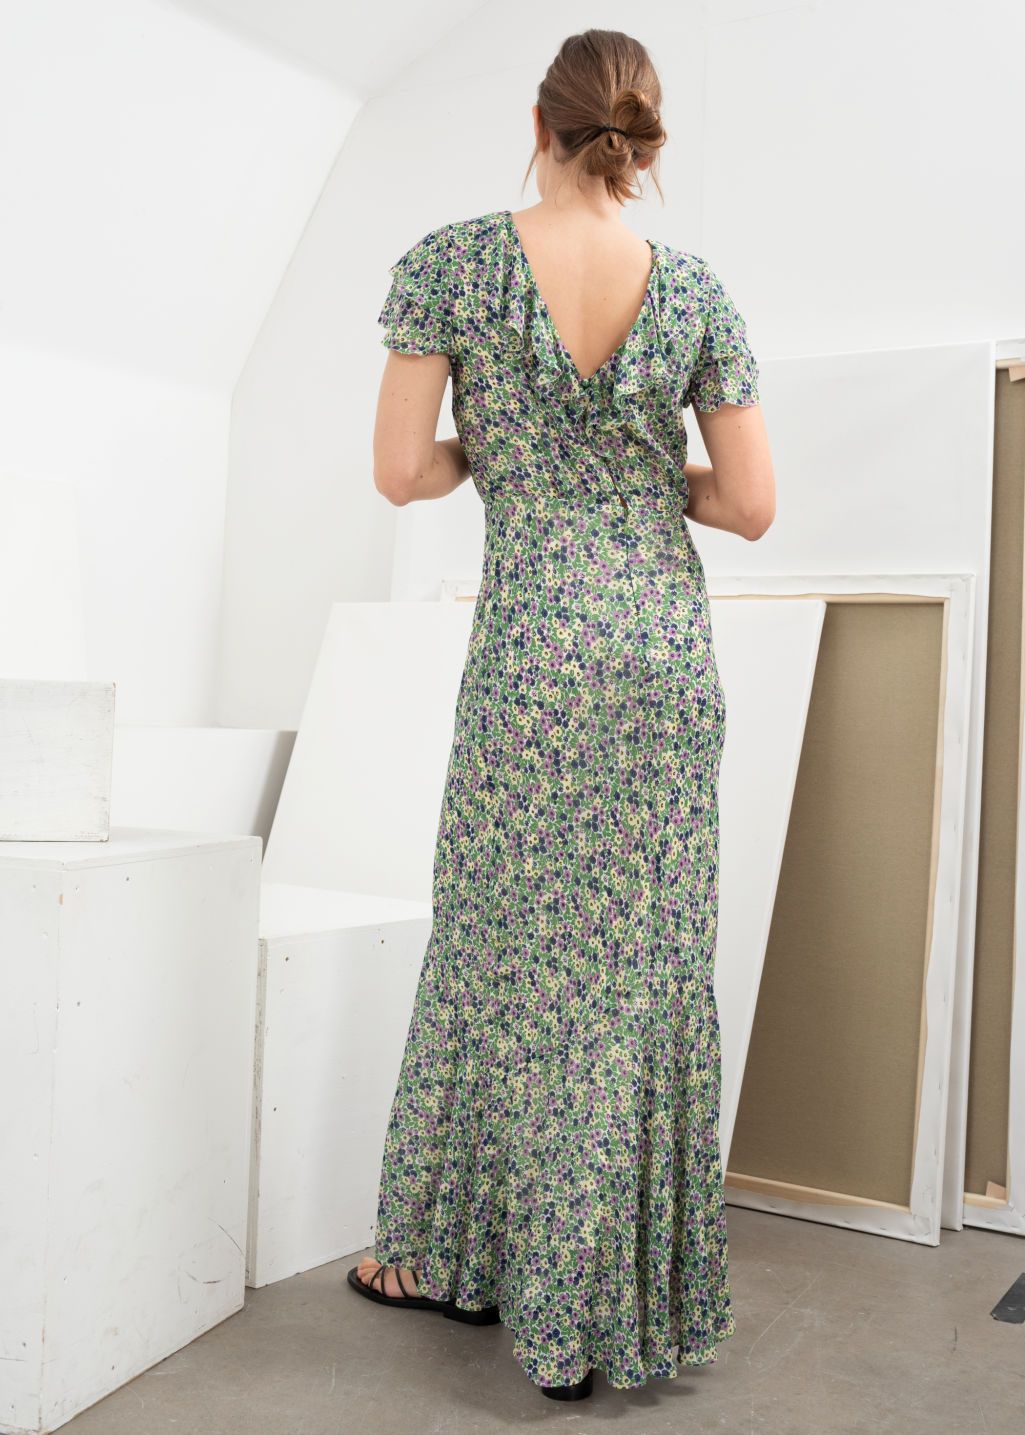 2fa41b093a972 Ruffled Floral Maxi Dress - Floral - Maxi dresses - & Other Stories